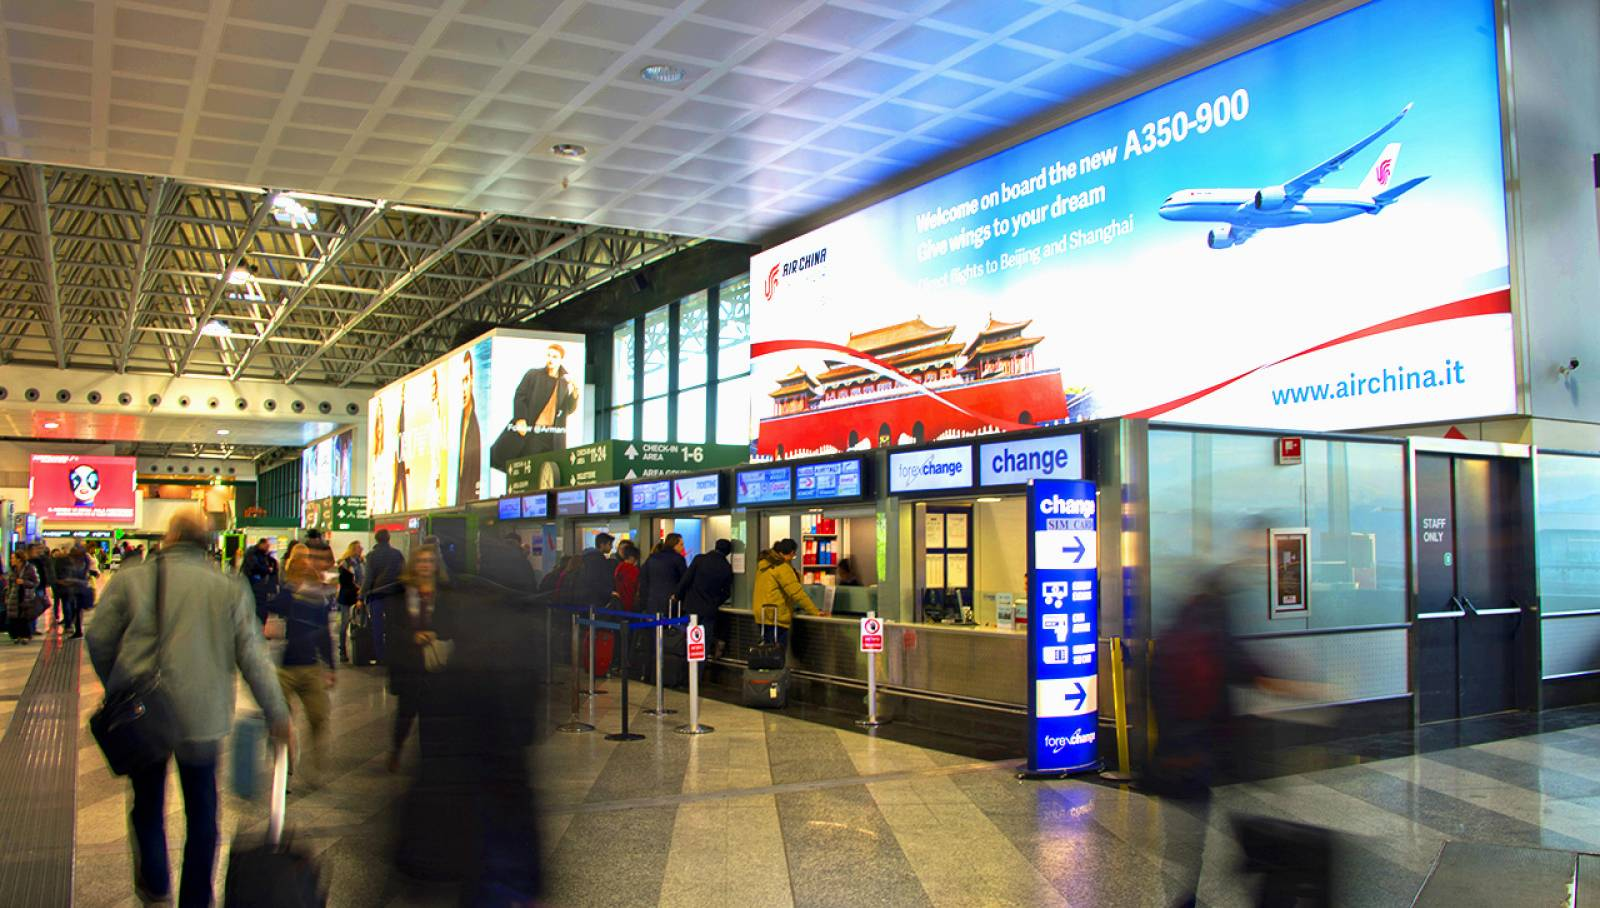 Airport advertising IGPDecaux Backlight at Malpensa for Air China